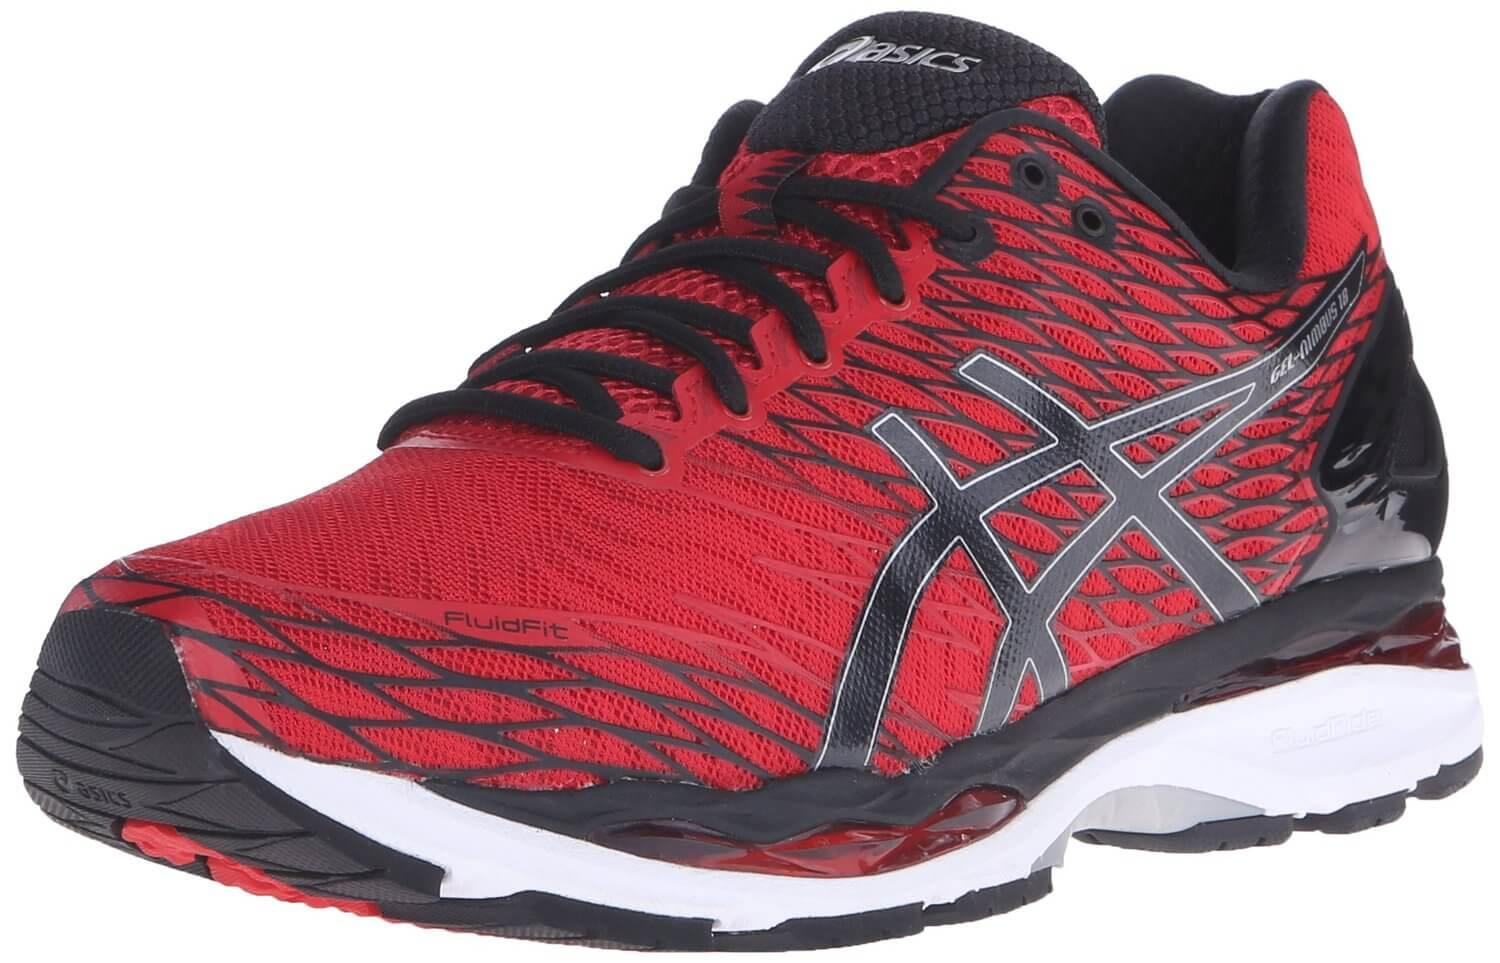 The Asics Gel Nimbus 18 features a powerful combination of cushioning and adaptability.